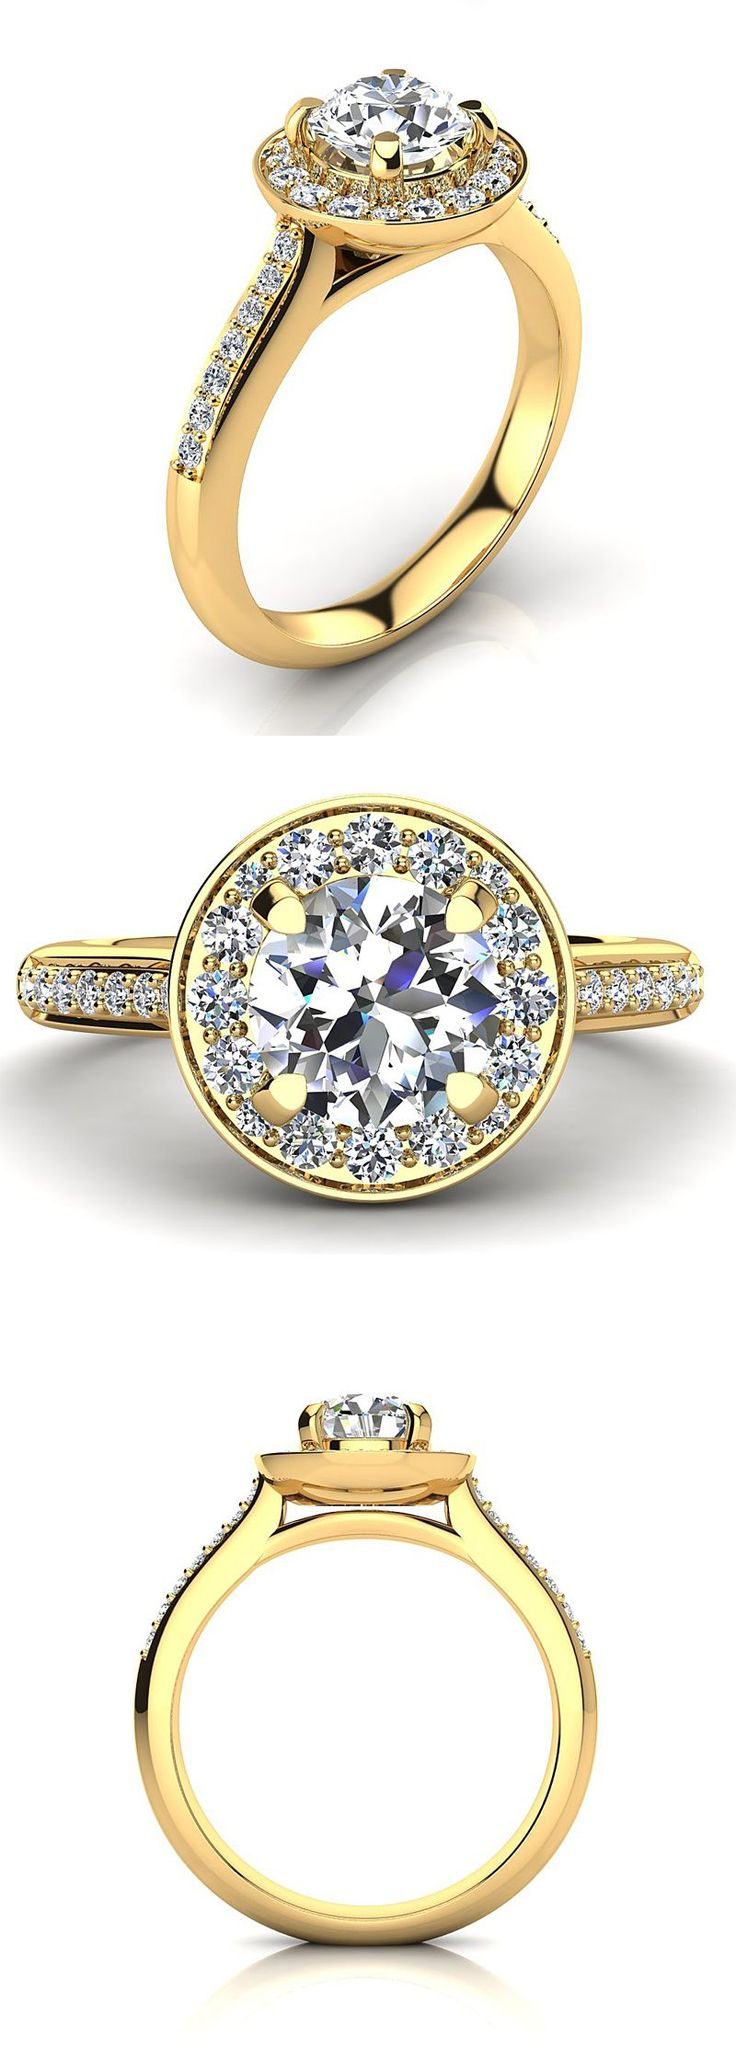 This Halo Designer 18K Gold Round Diamond Engagement Ring by Luxurman showcases 1.1 carats of dazzling high quality G color VS clarity round diamonds masterfully set in 18K gold base. This Designer Engagement Ring showcases 0.8 carat diamond in the center and 0.3 carats of diamonds on sides. This Diamond Engagement Ring is available in 18K white gold, yellow gold and rose gold.